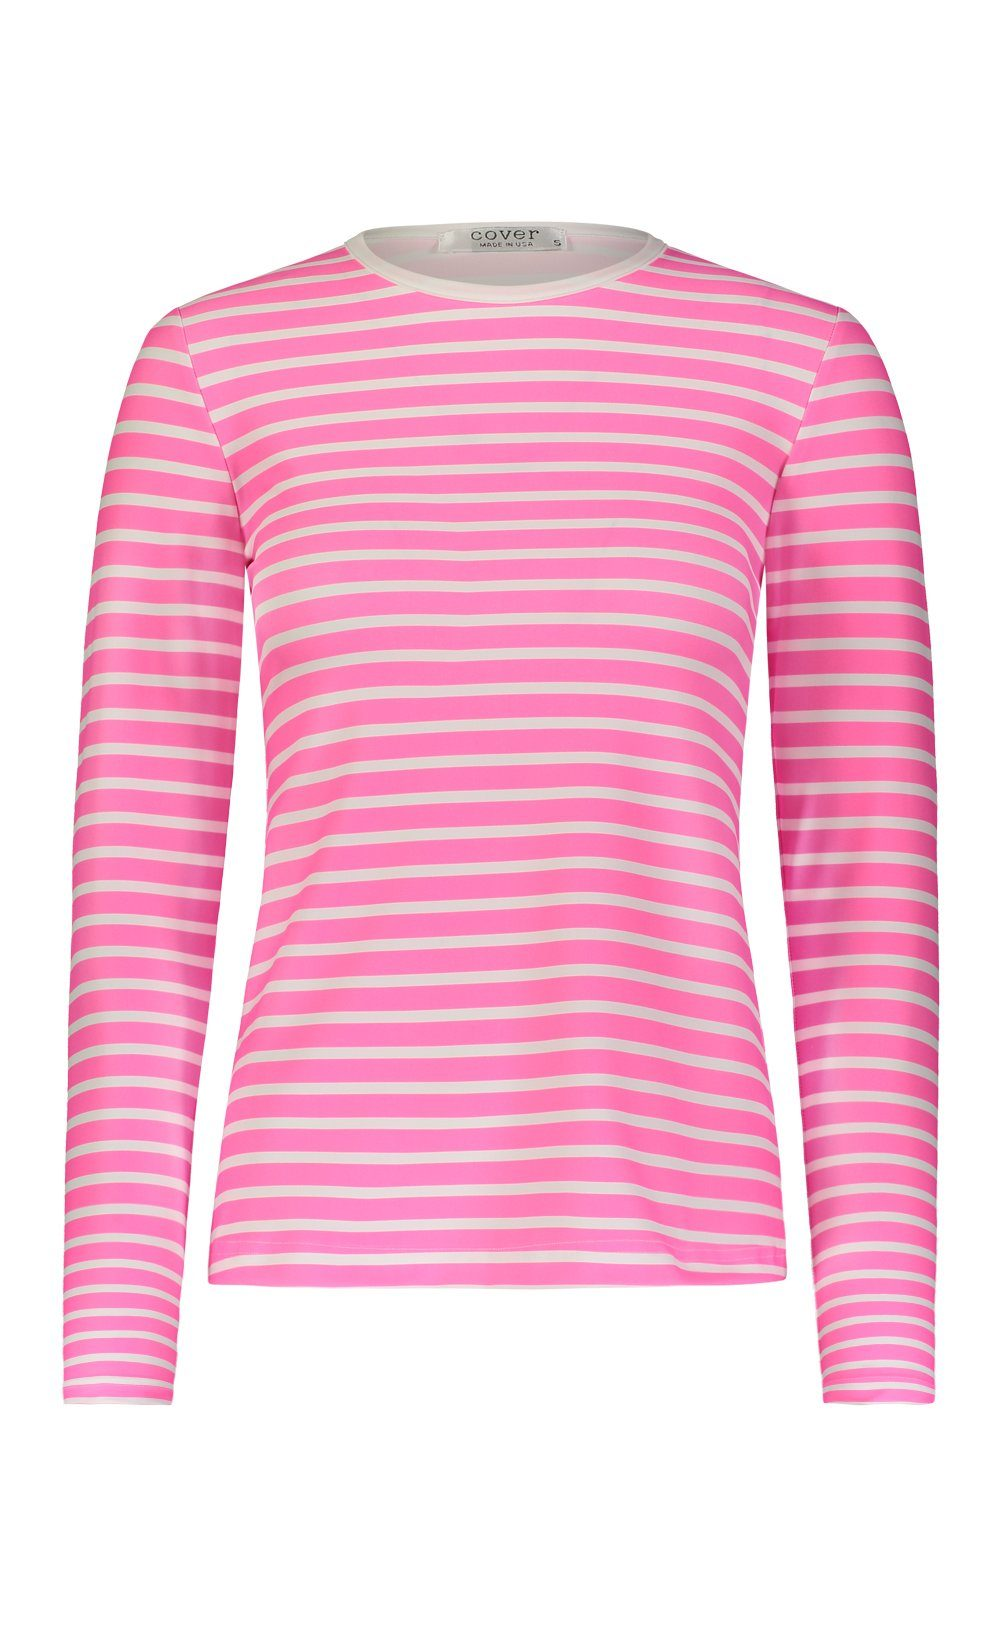 Long-Sleeved Swim T - Neon Pink Stripes